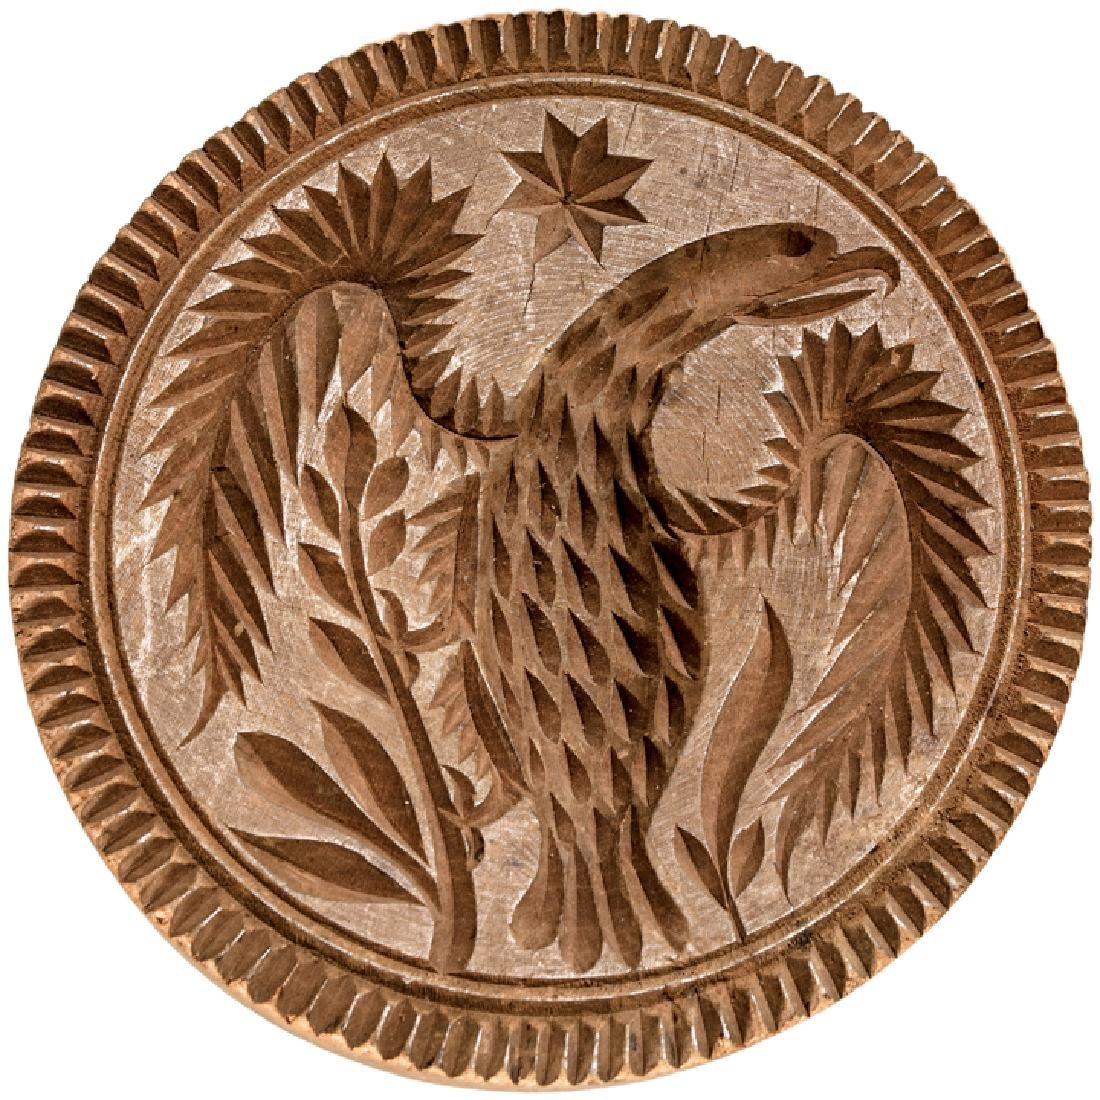 Early Hand-Carved Federal Eagle Butter Print Mold - 2